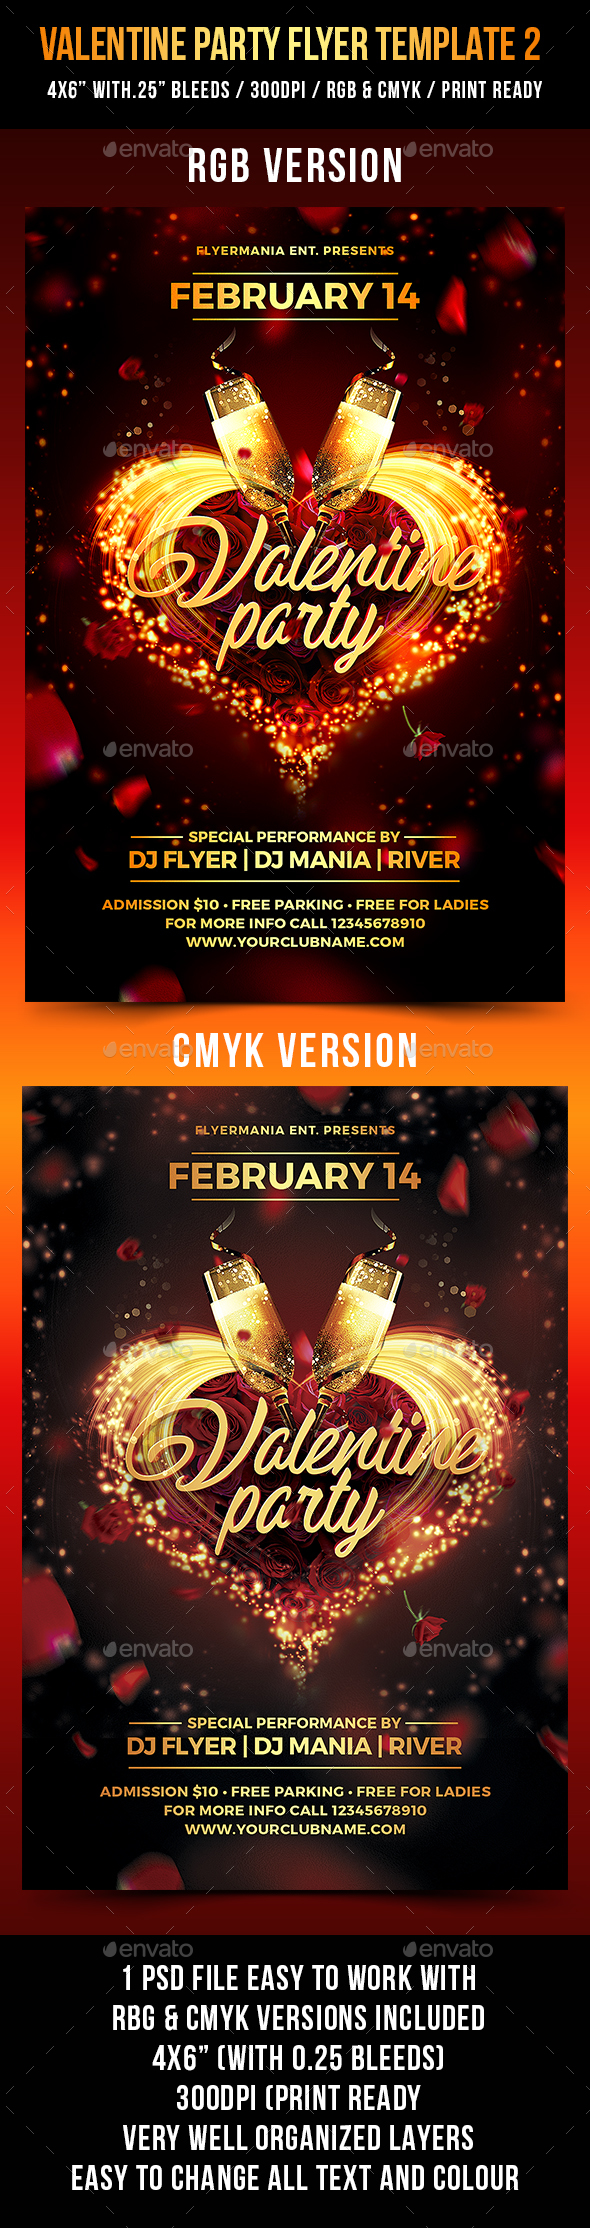 Valentine Party Flyer Template 2 - Events Flyers